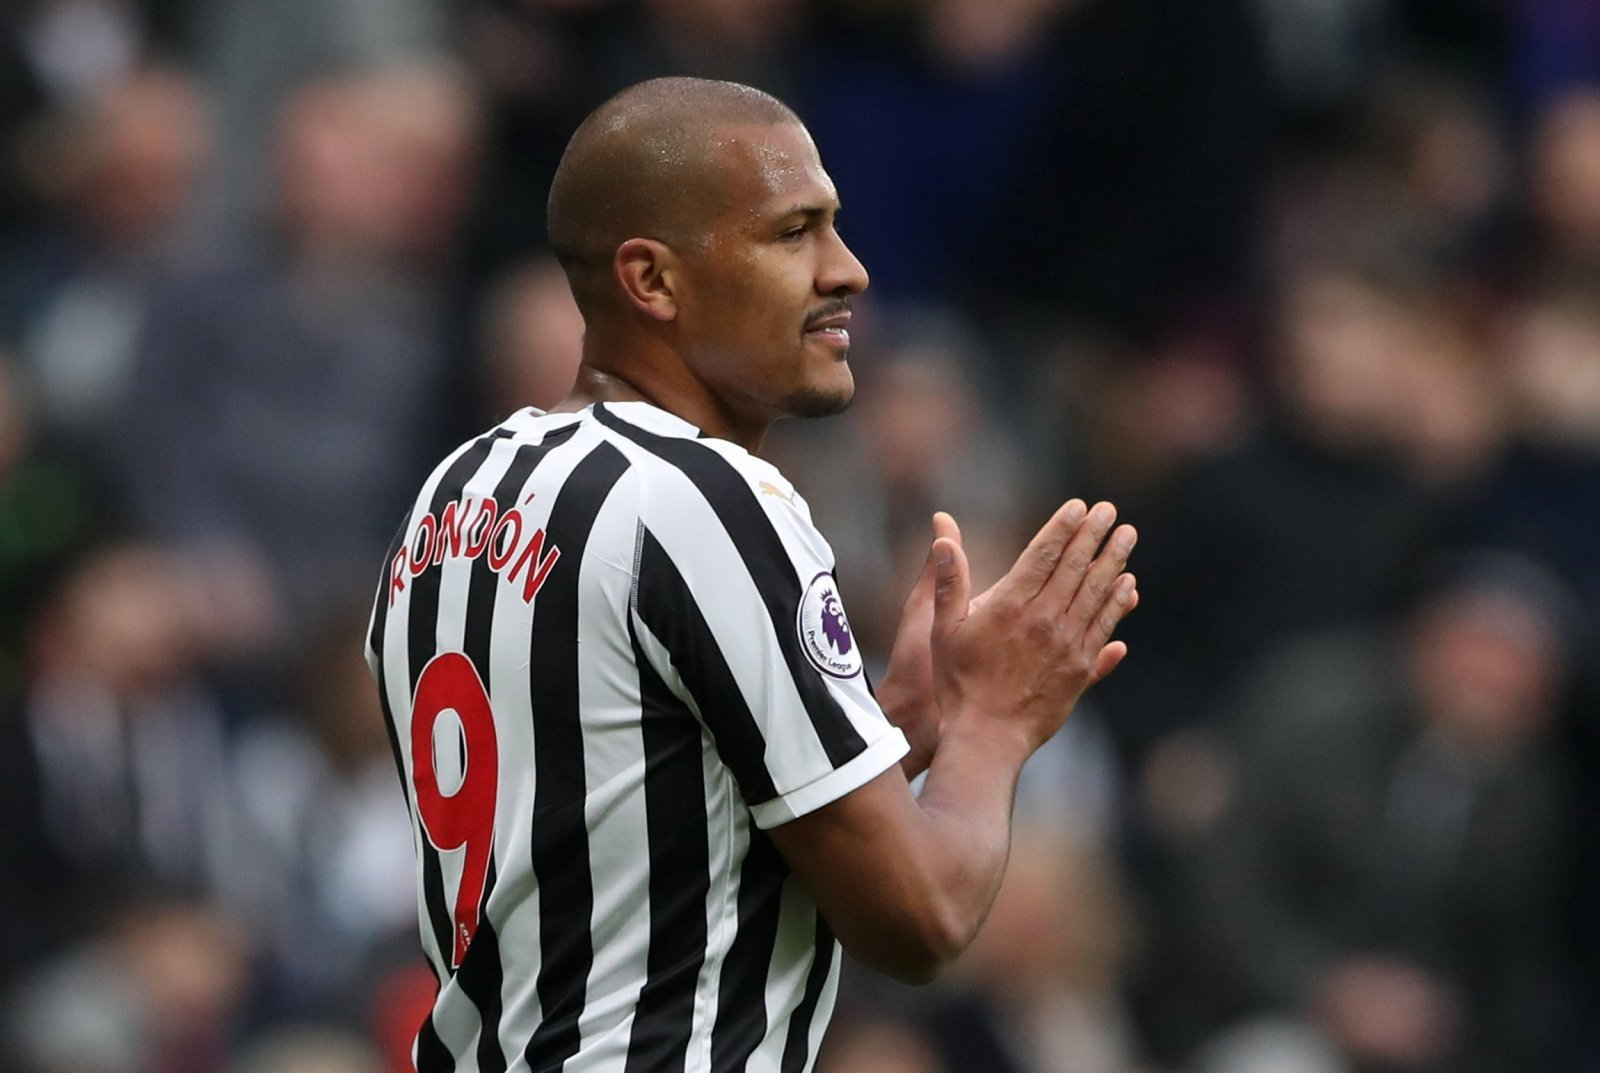 West Ham United: Salomon Rondon bid should be increased